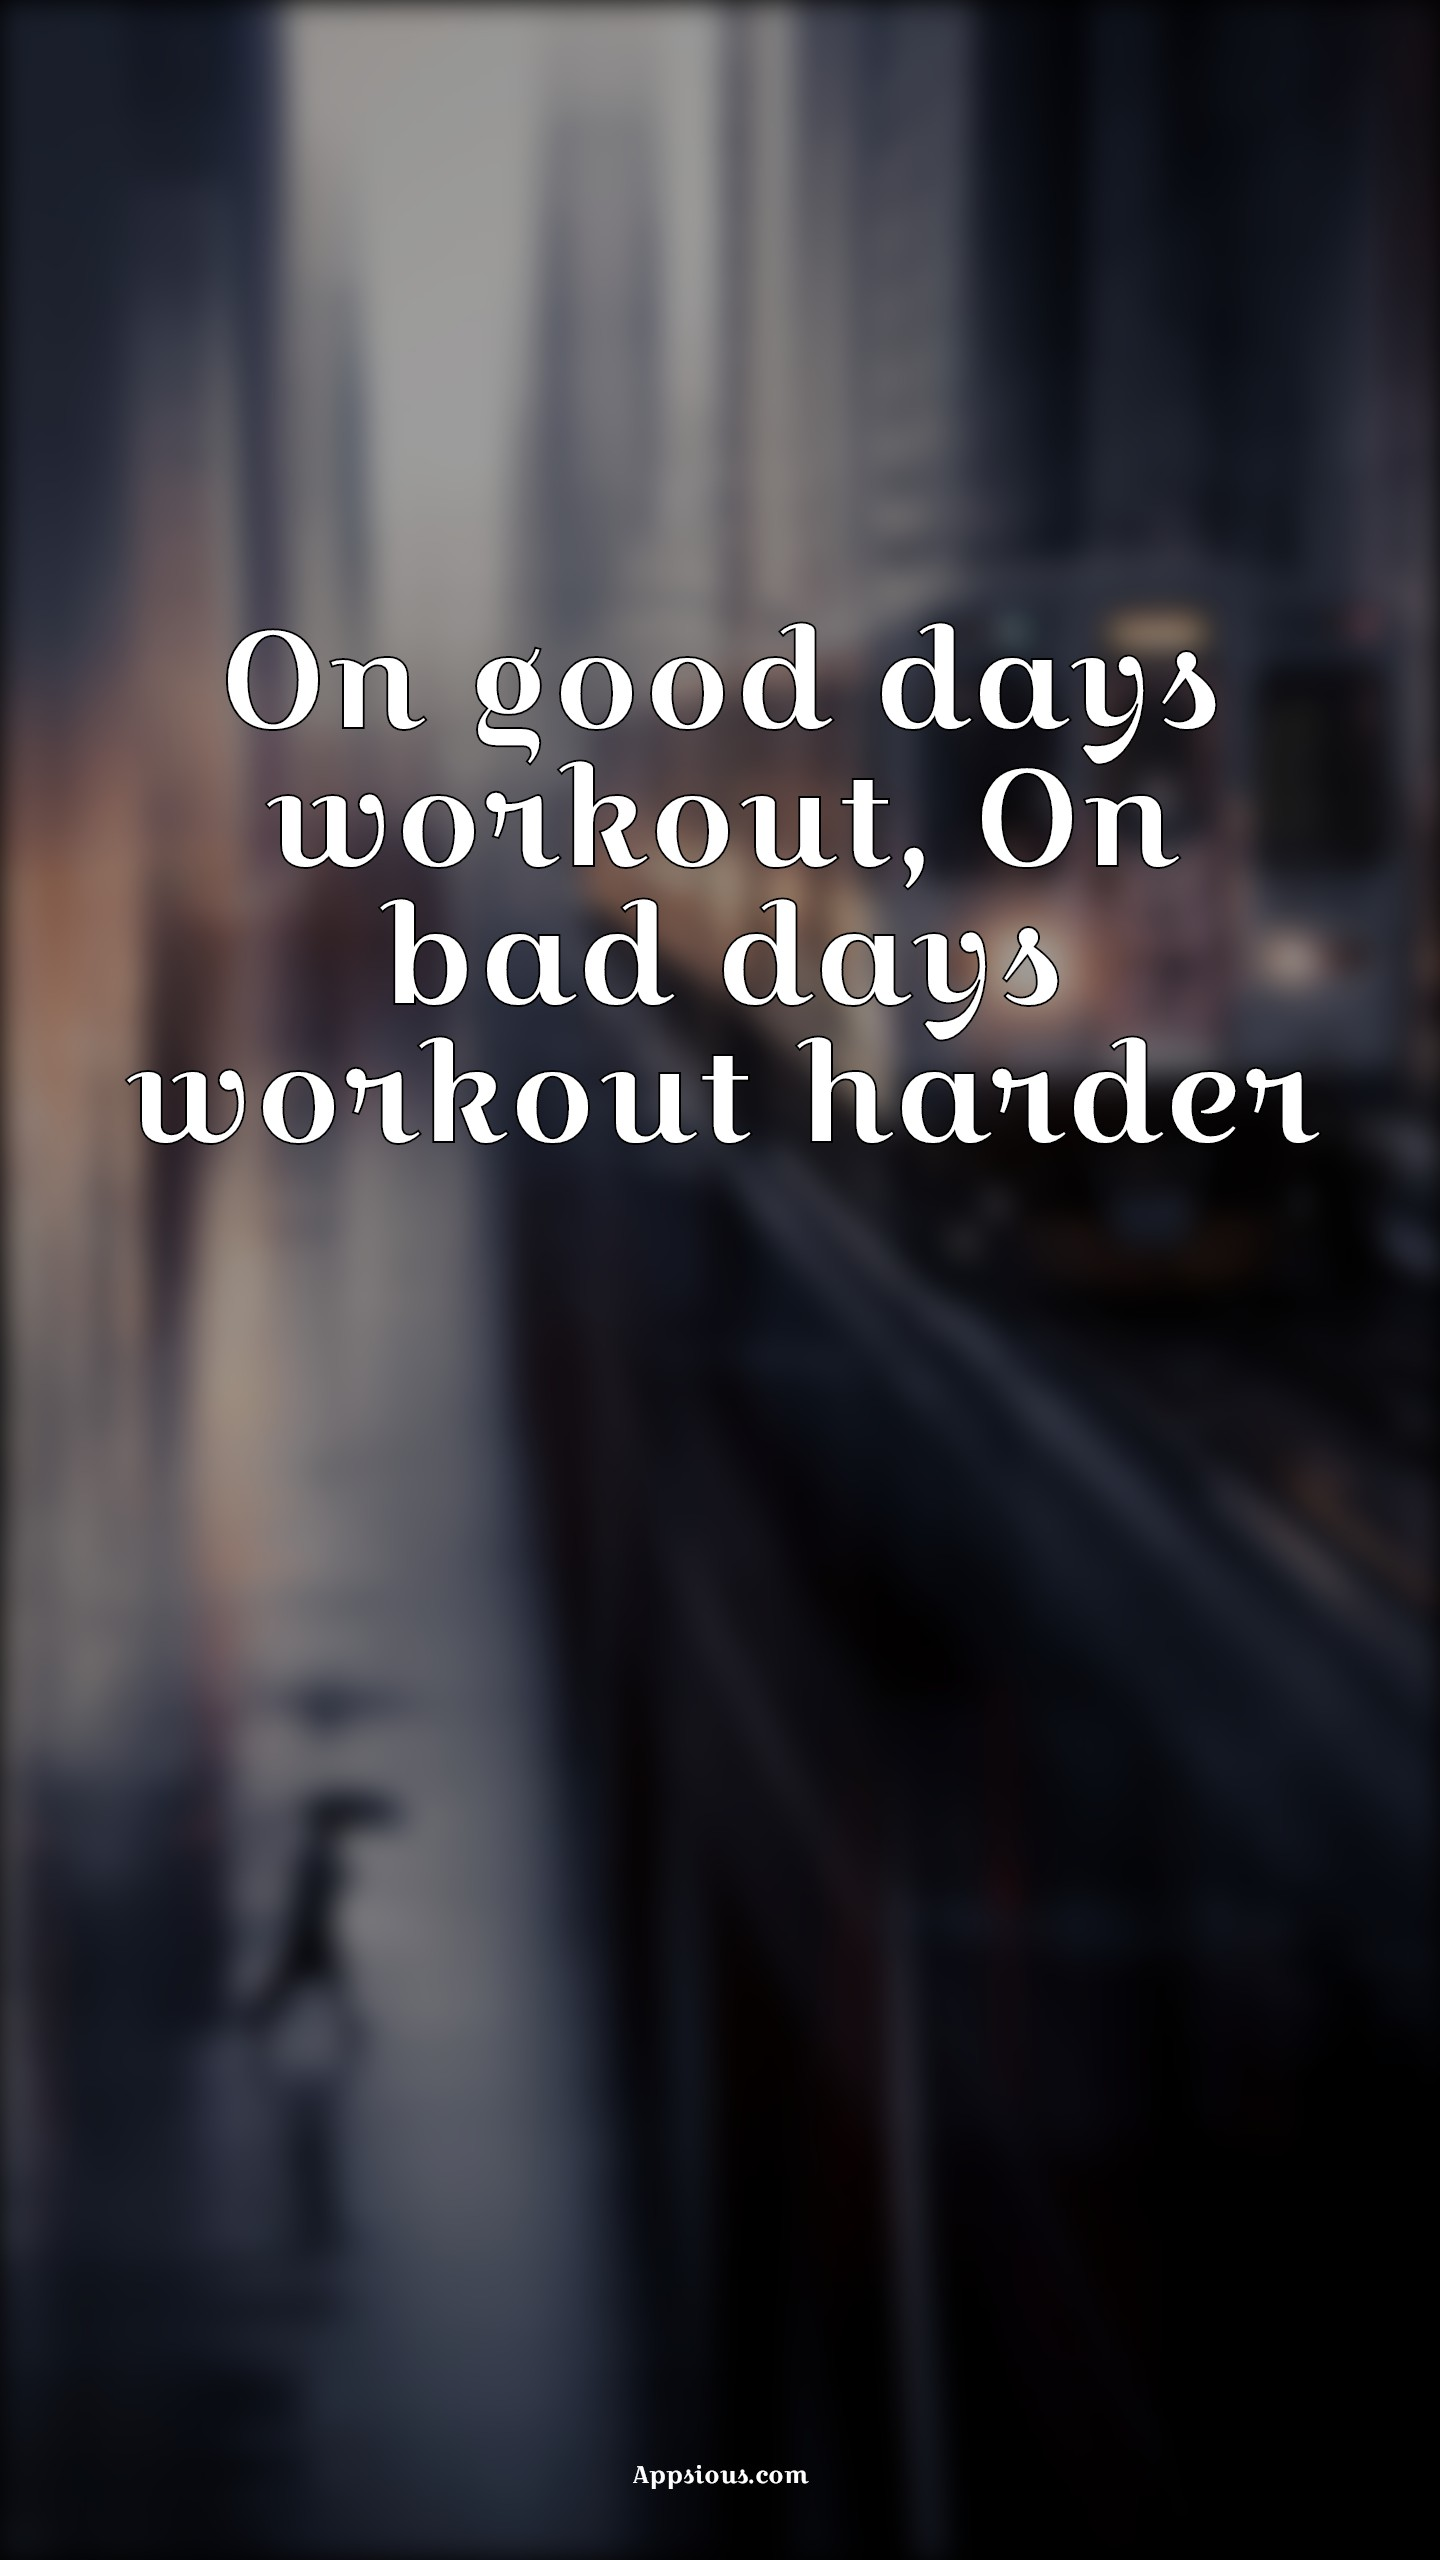 On good days workout, On bad days workout harder